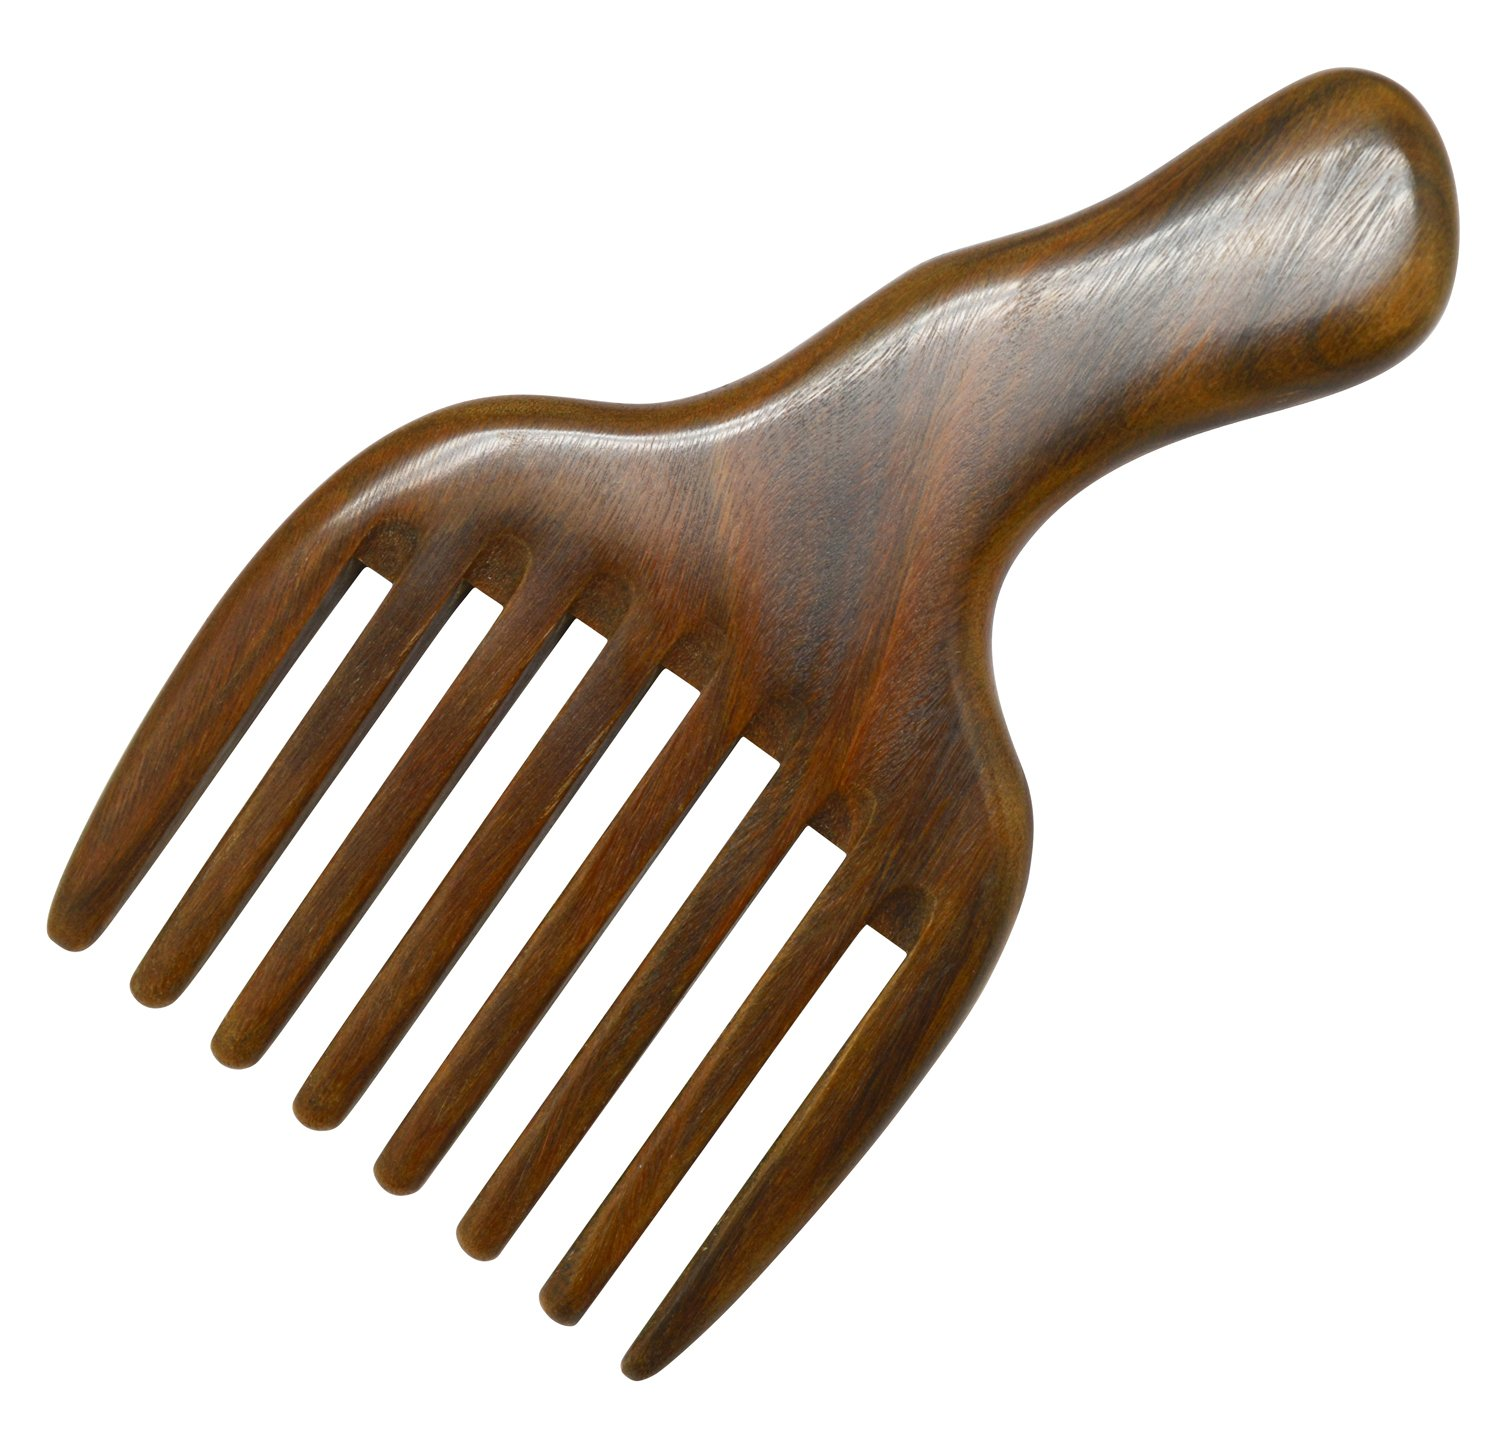 Meta-C Hair/Beard Pick/Comb - Made Of One Whole Piece Of Natural Green Sandal Wood With Fantastic Handle B071GTKD66 櫛